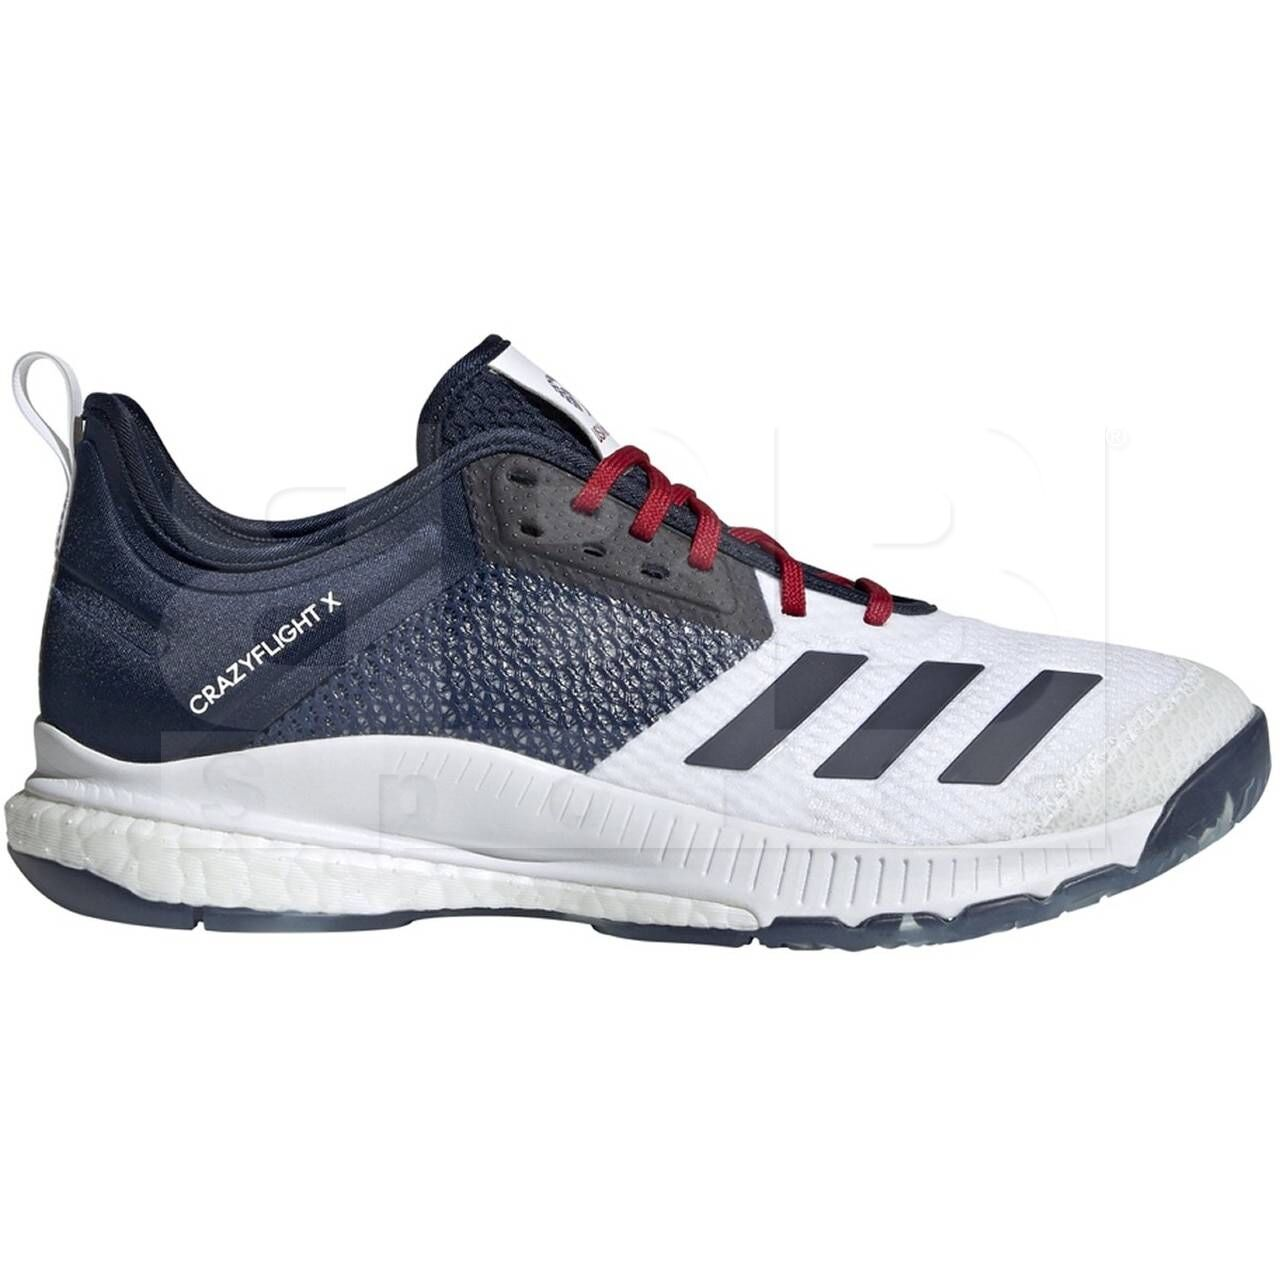 Adidas Crazyflight X 3 USA Volleyball Women's Shoes Cloud White/Collegiate Navy/ Power Red